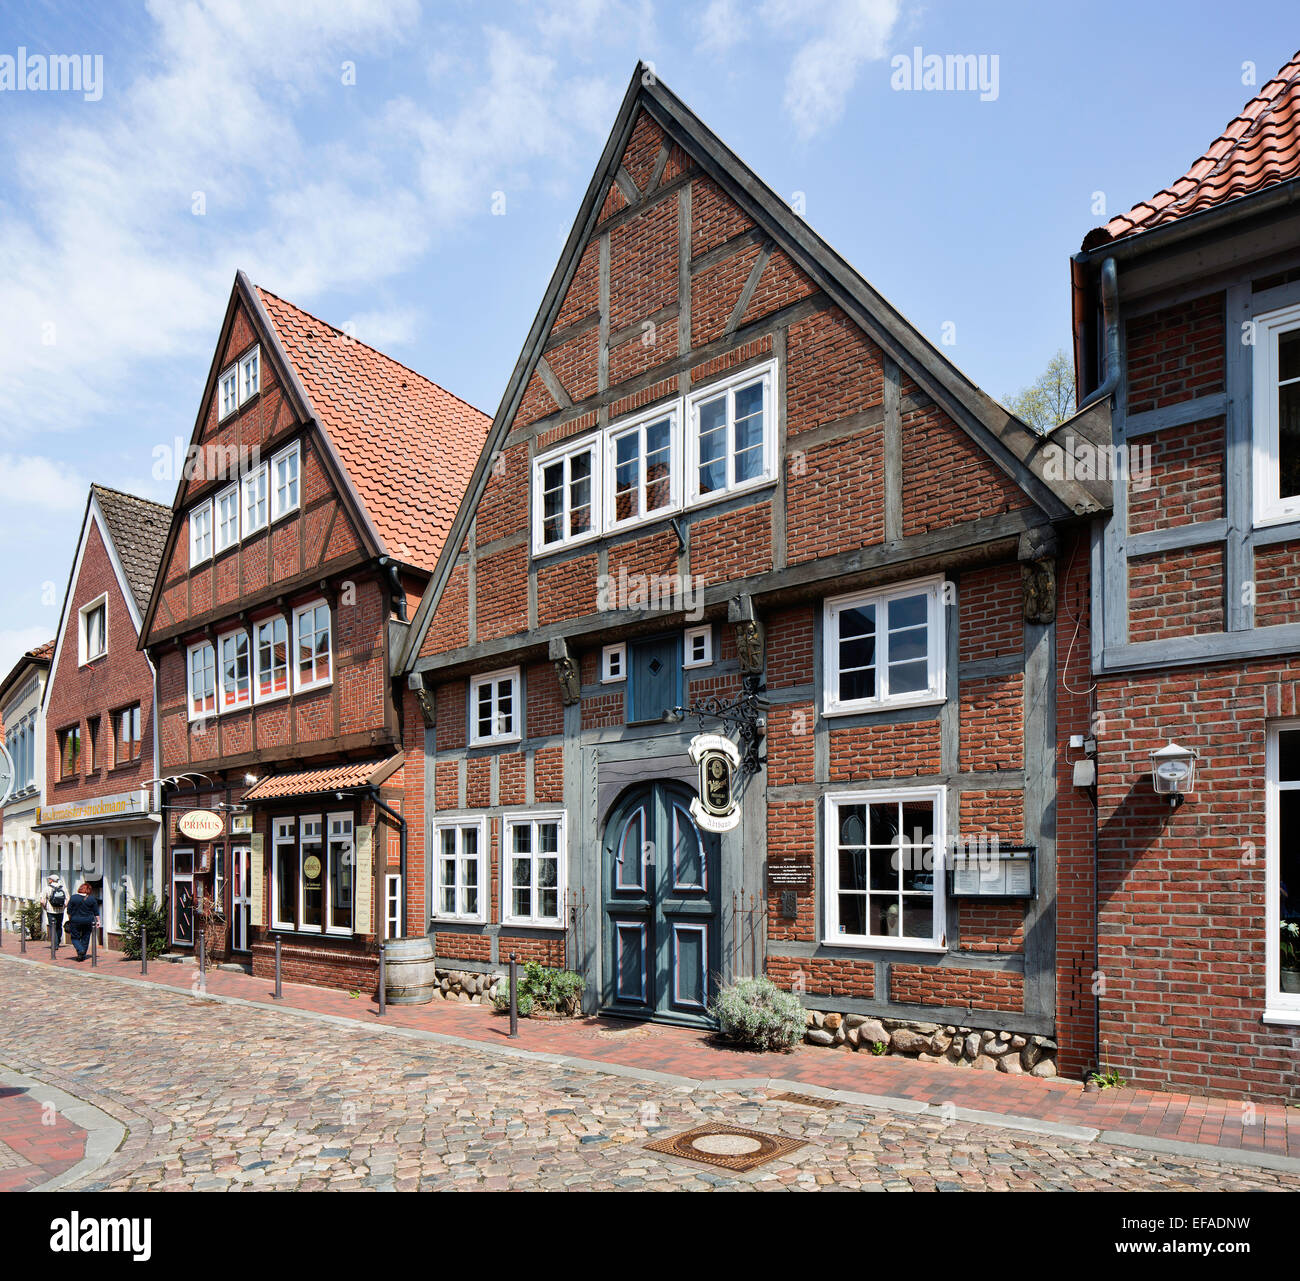 Abthaus building, historic centre, Buxtehude, Altes Land, Lower Saxony, Germany - Stock Image